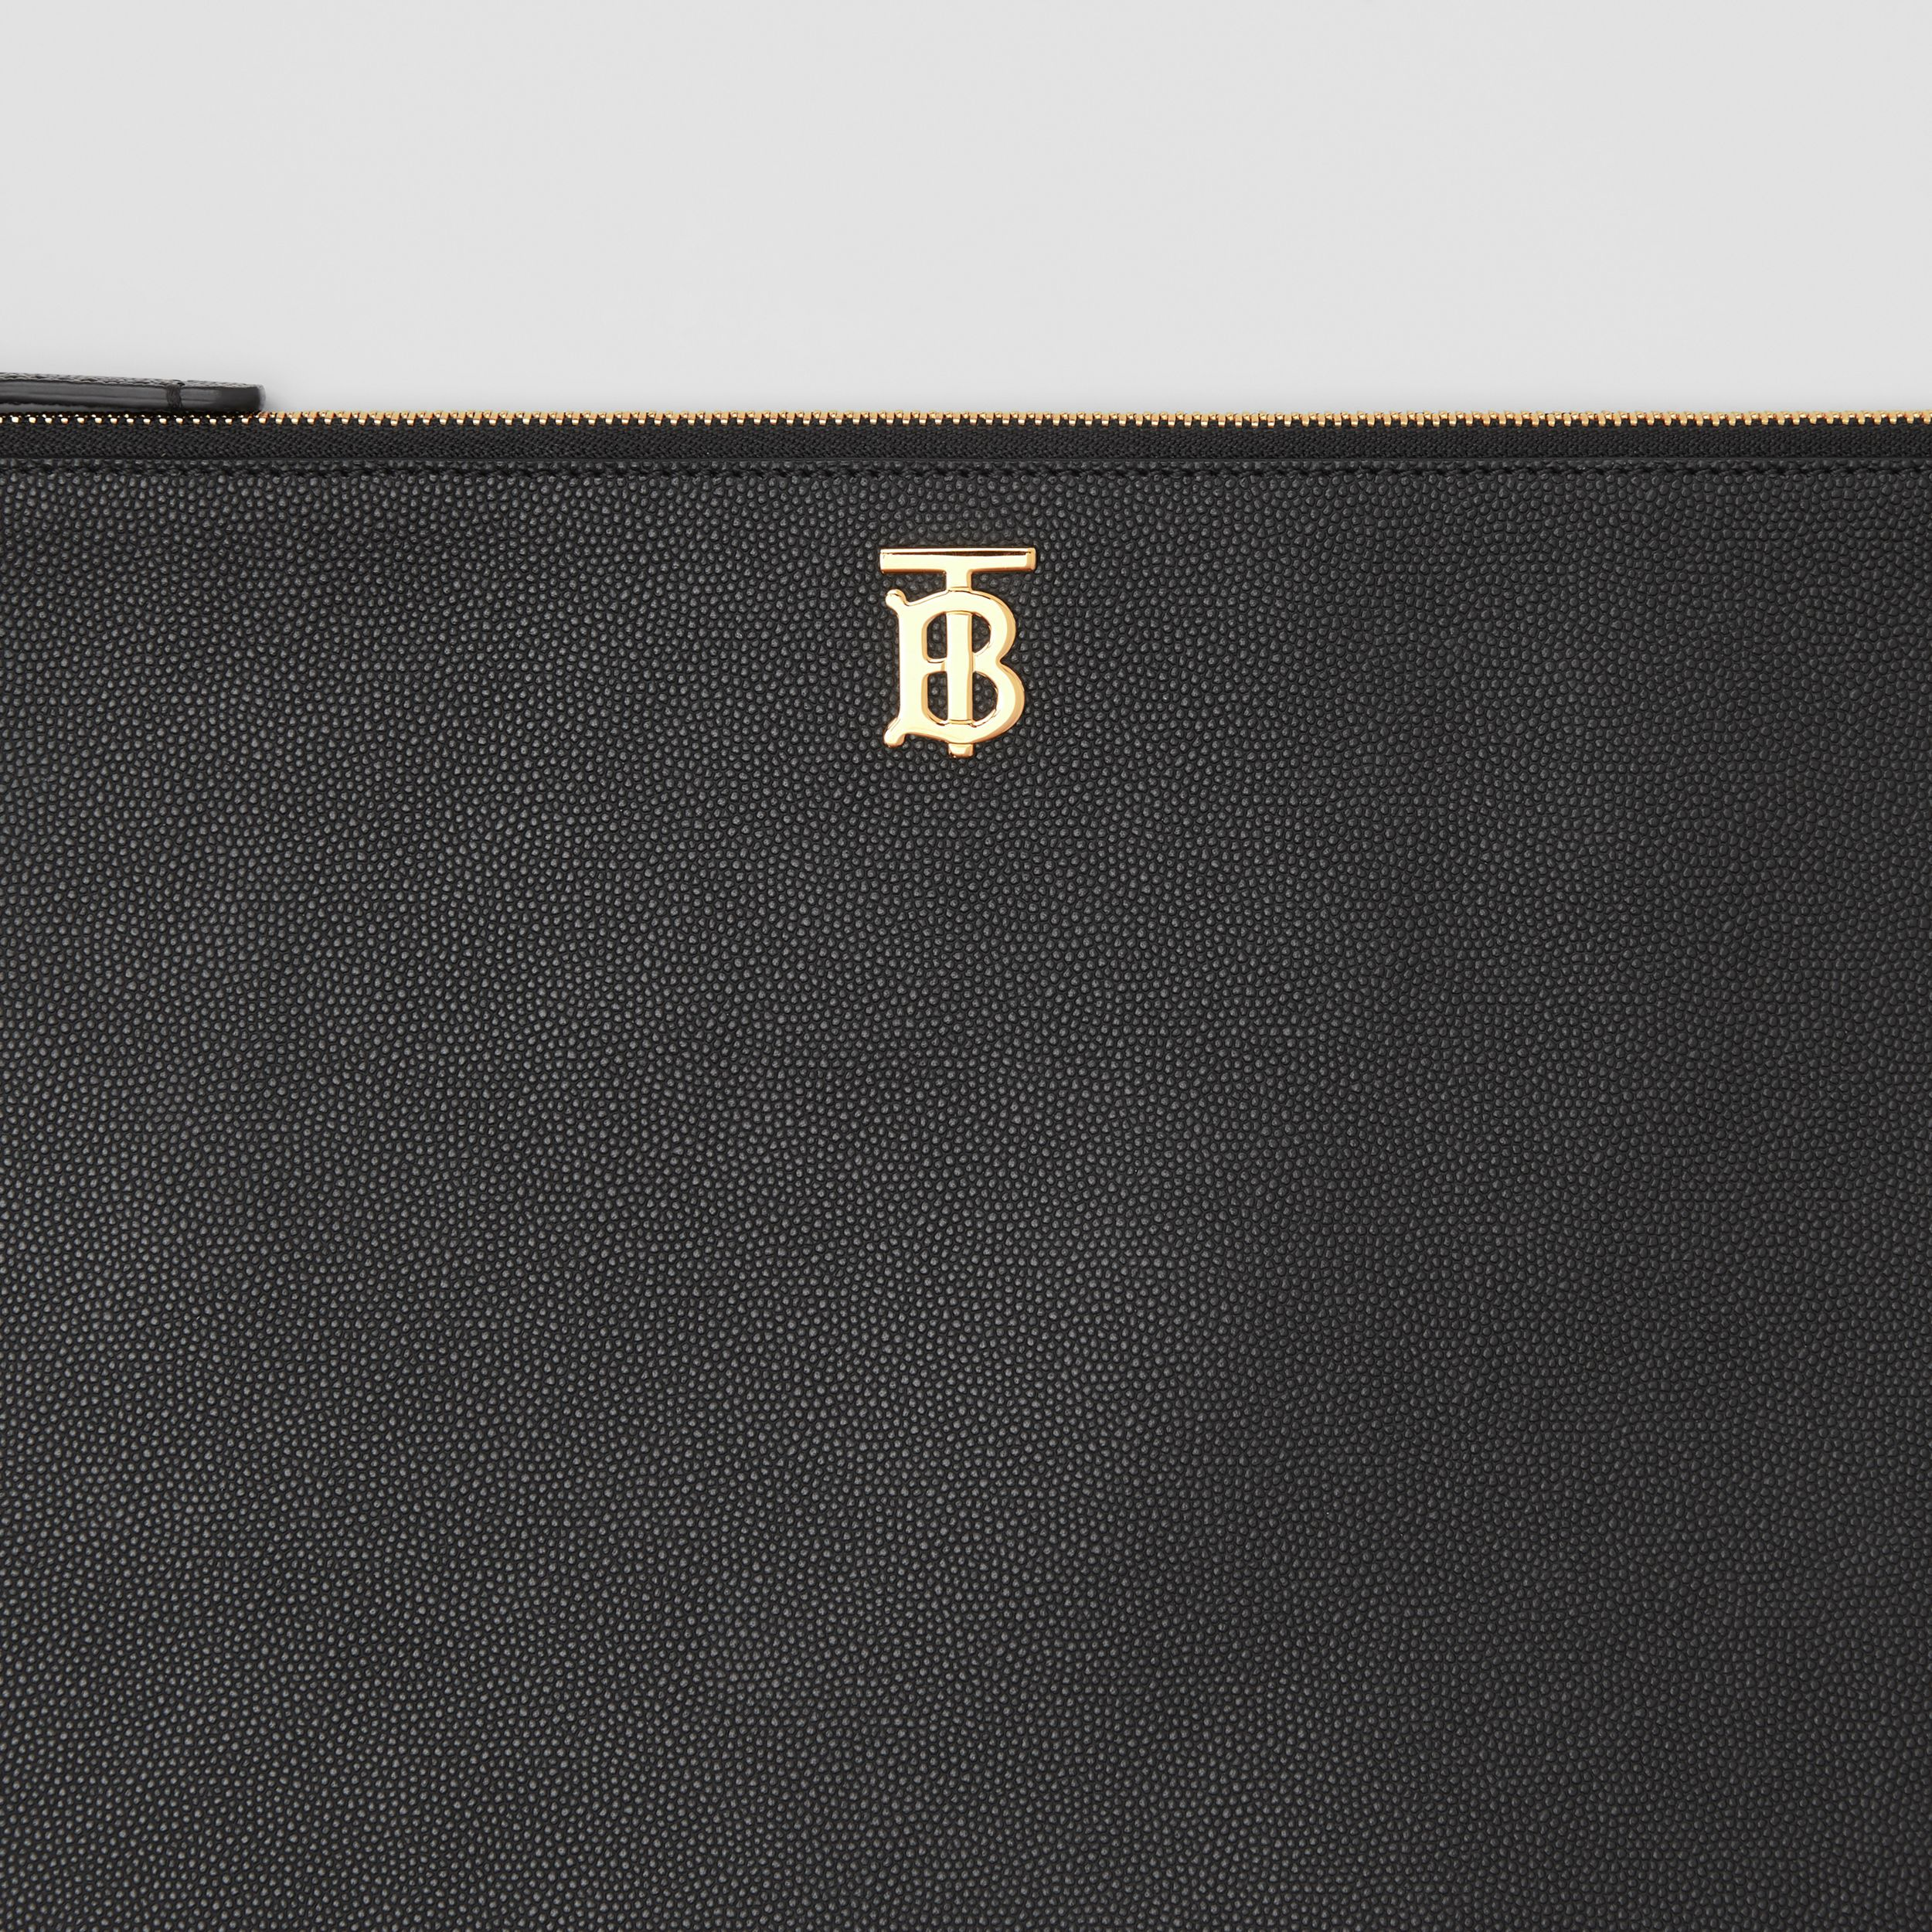 Monogram Motif Grainy Leather Pouch in Black - Women | Burberry - 2